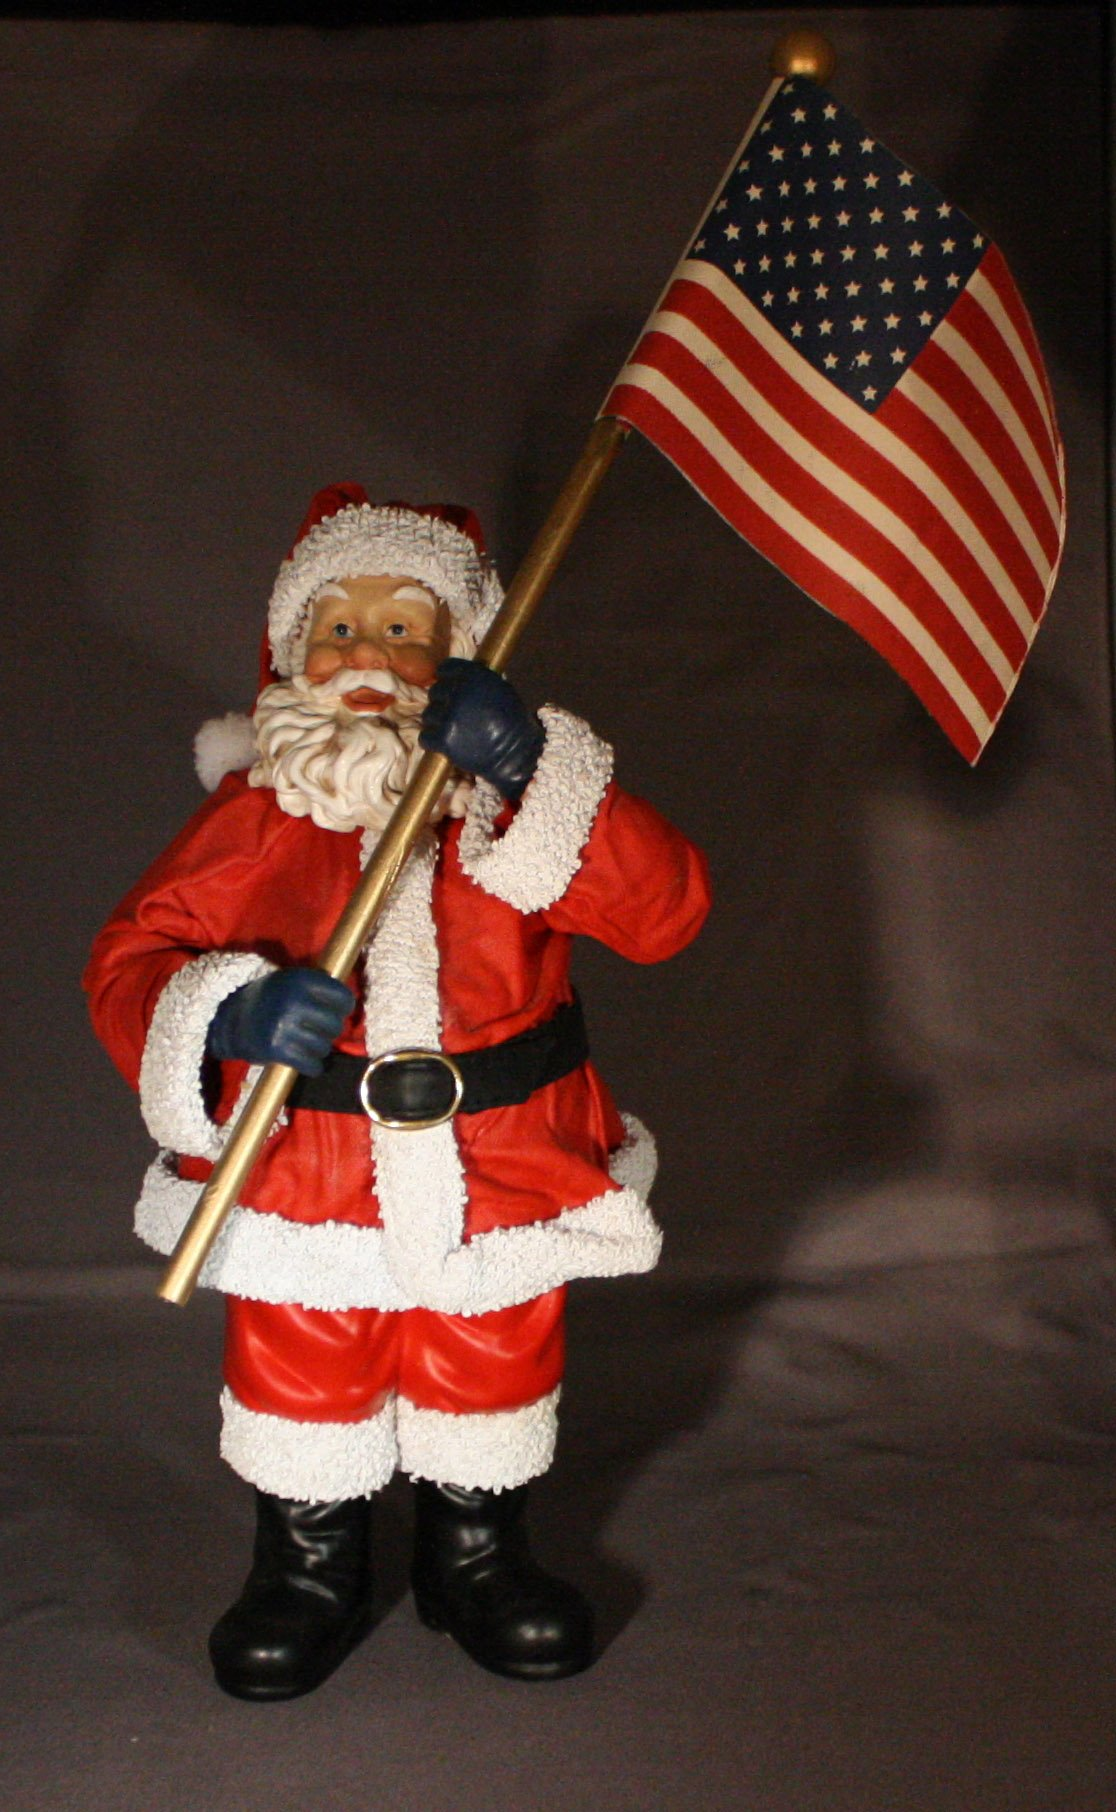 Possible Dreams® Clothtique™ God Bless America Santa #713509 Features Santa Holding an American Flag by Possible Dreams